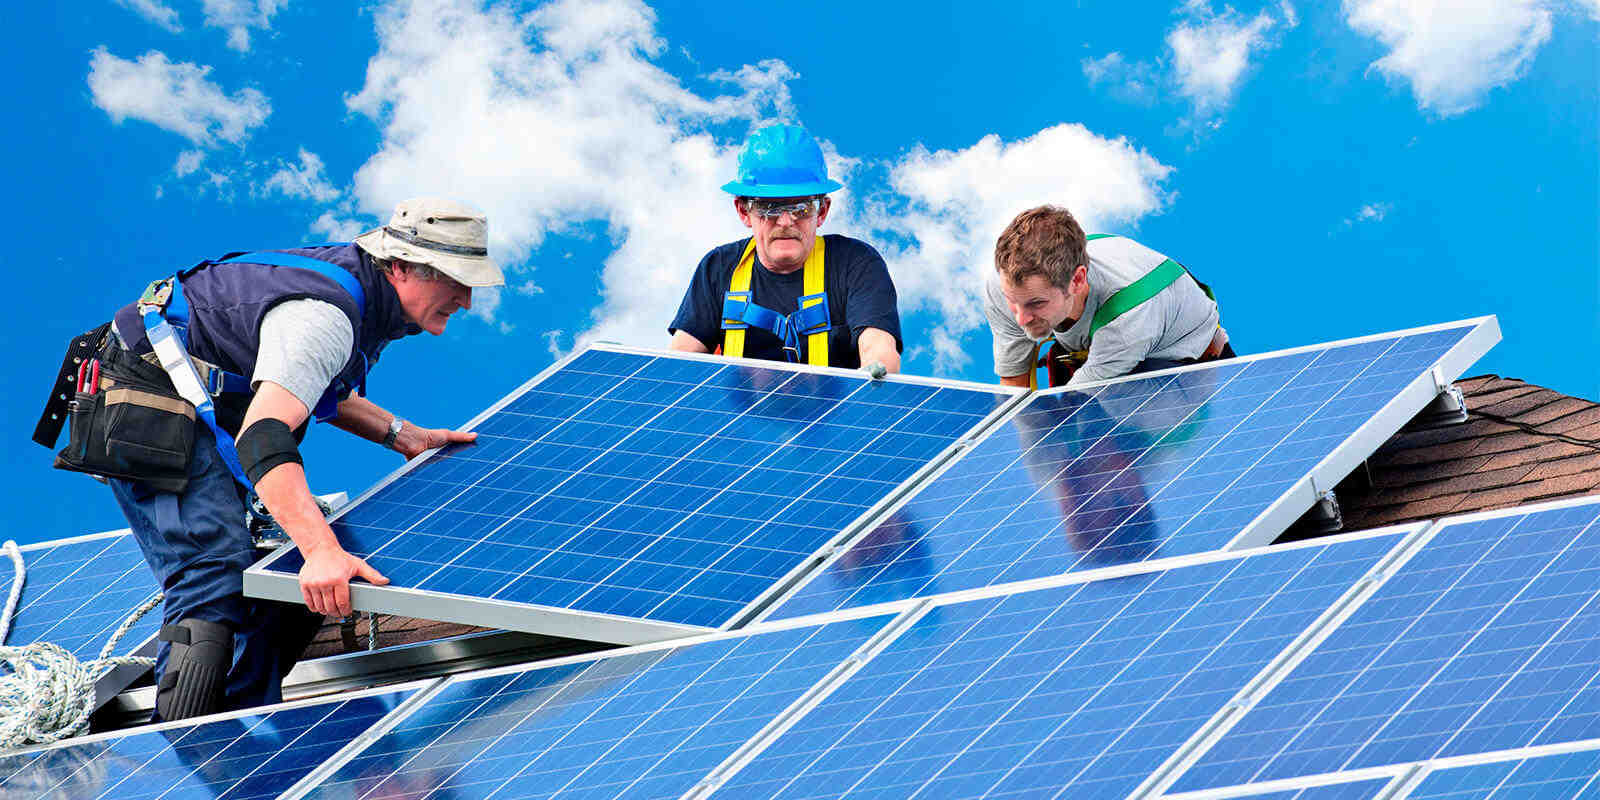 Can window cleaners clean solar panels?